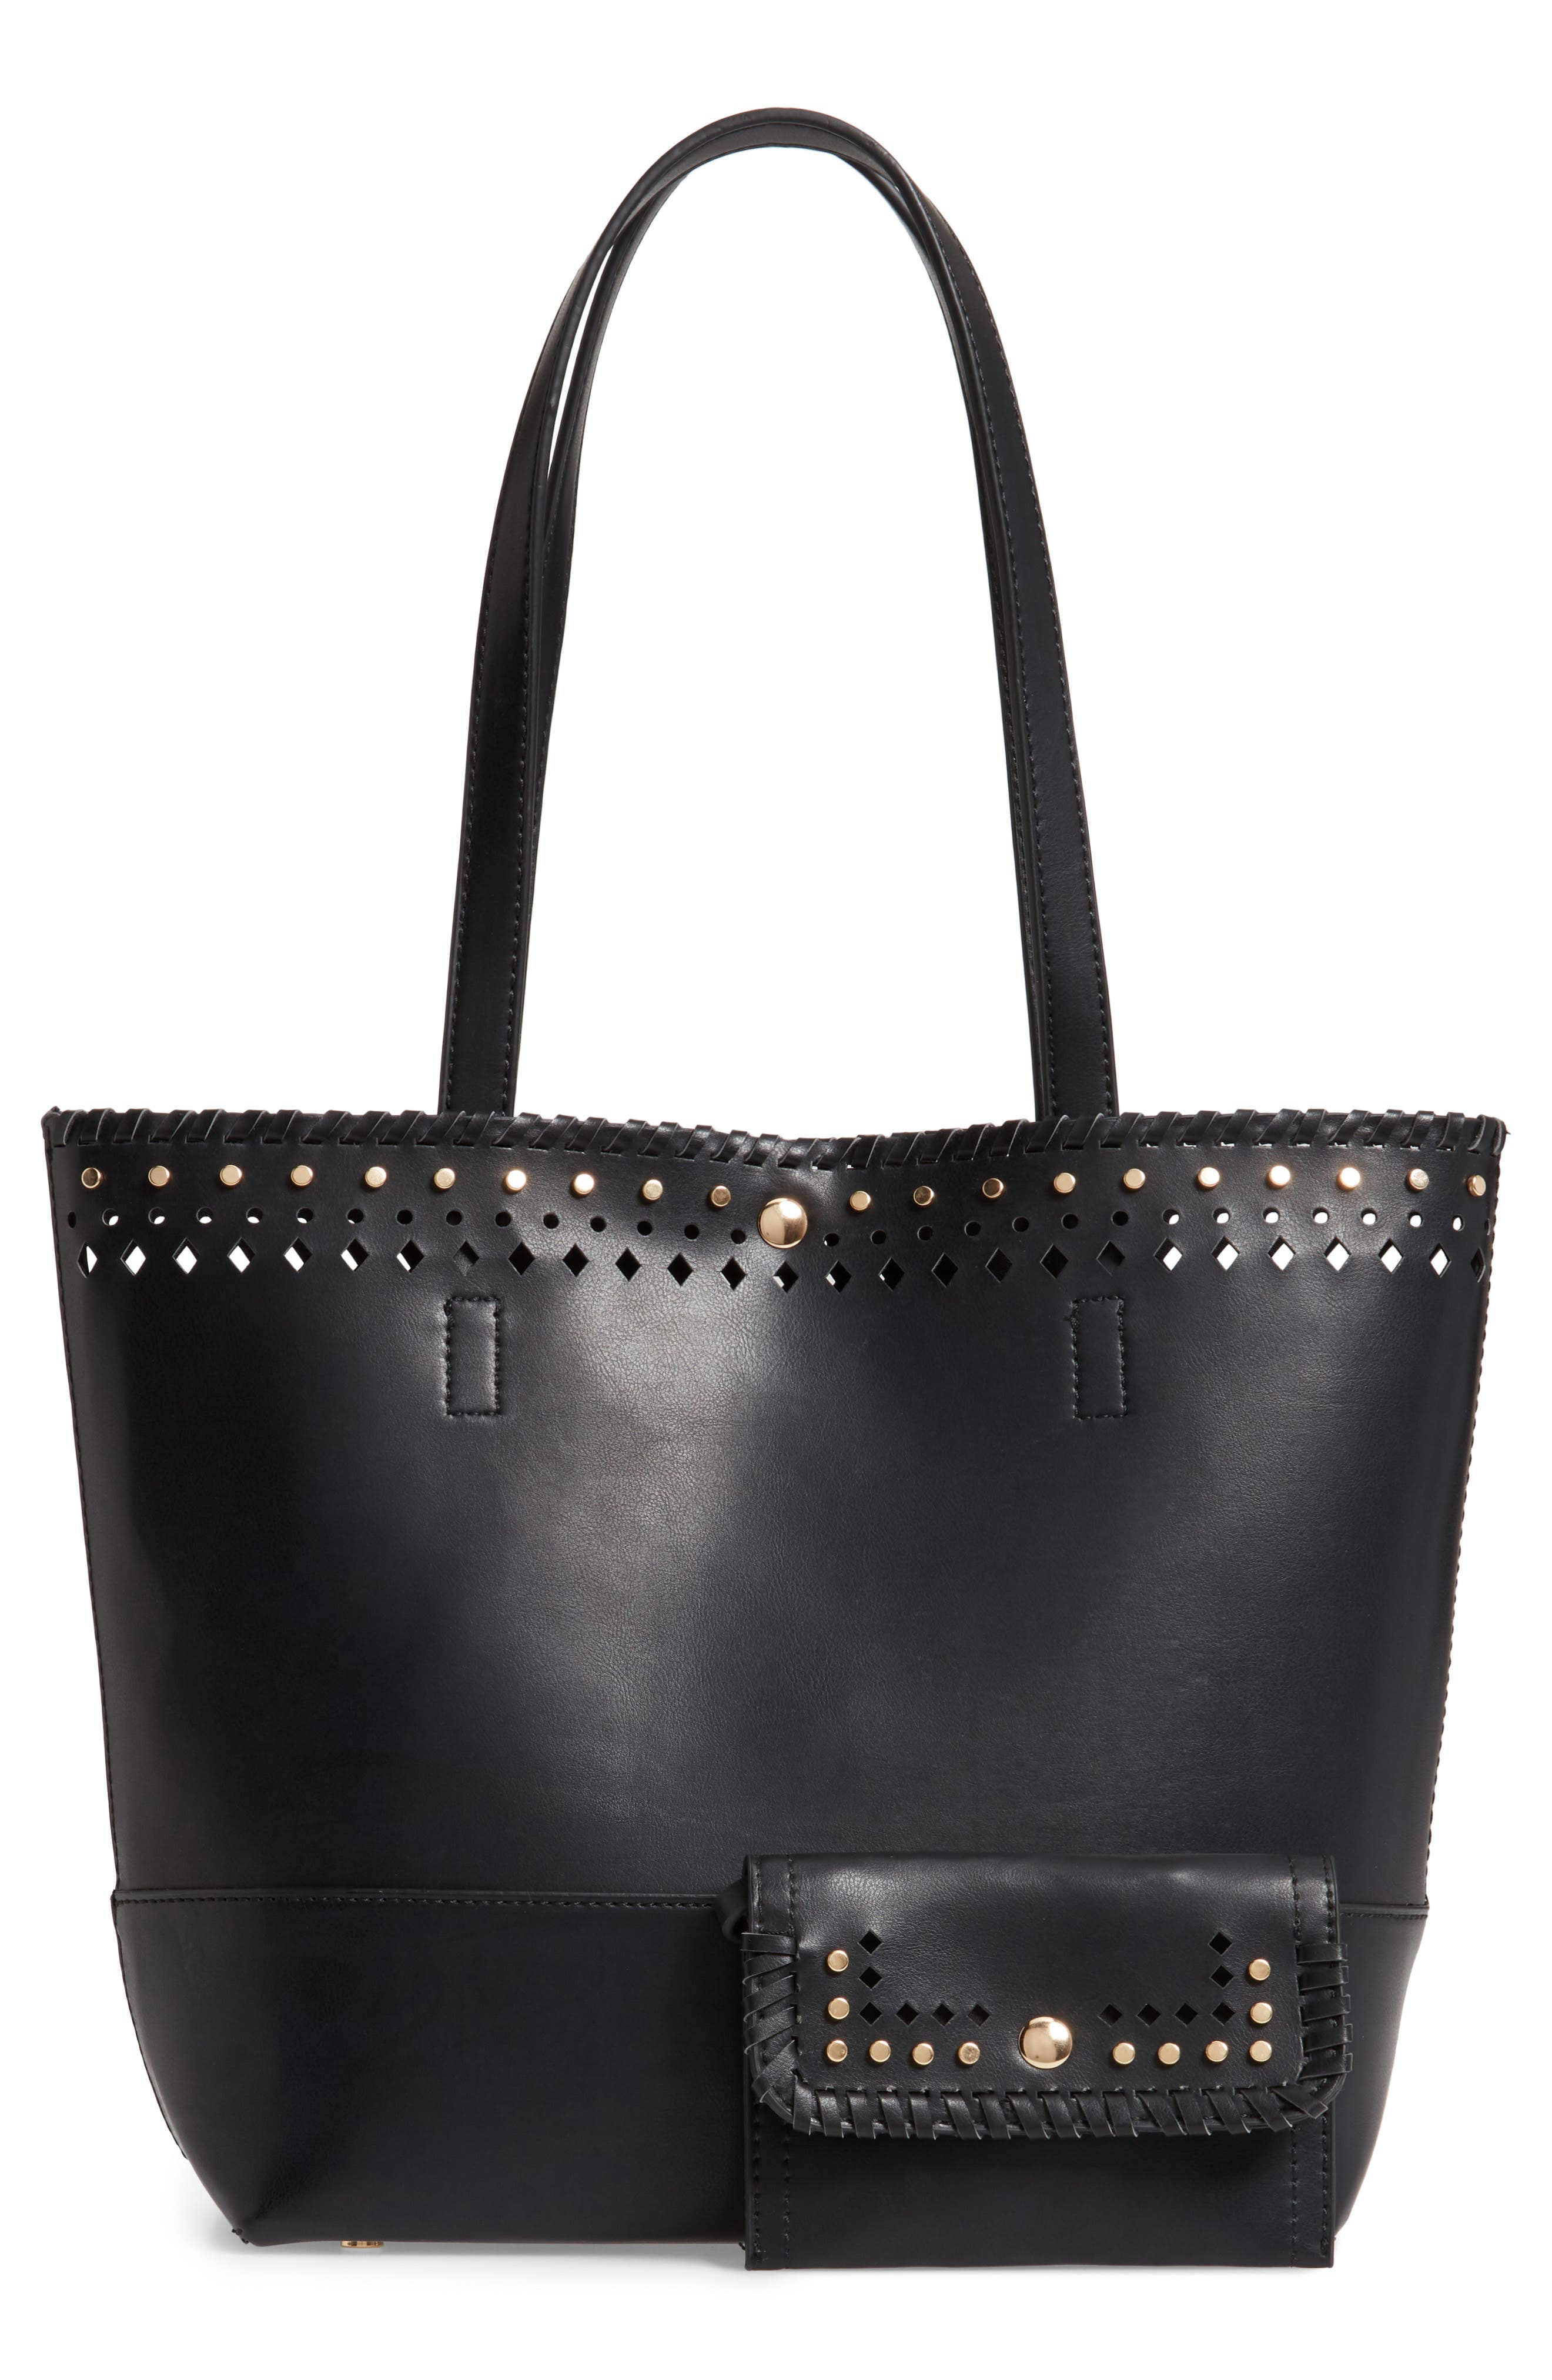 SOLE SOCIETY, Ivah Mini Faux Leather Tote, Alternate thumbnail 3, color, BLACK